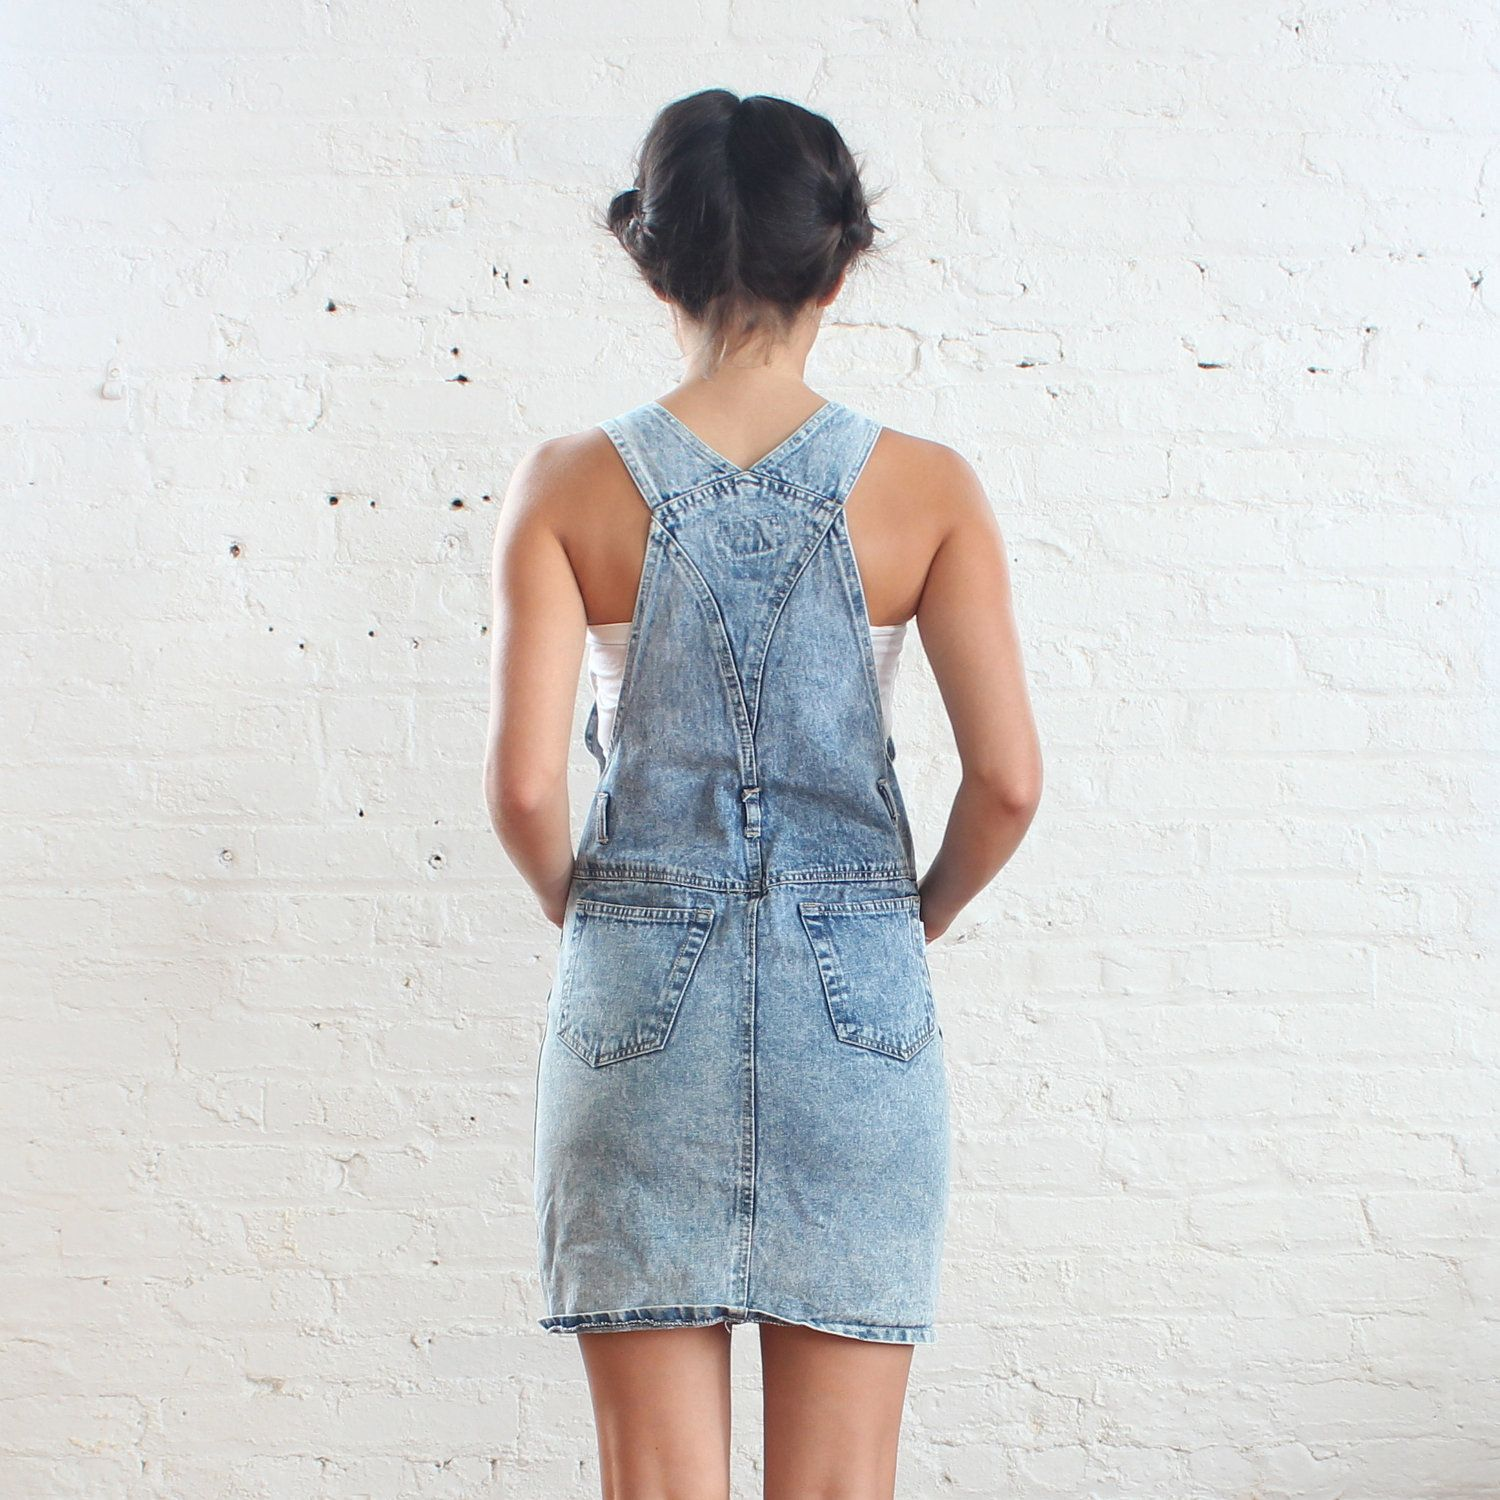 Woman in a Dungaree Dress Back